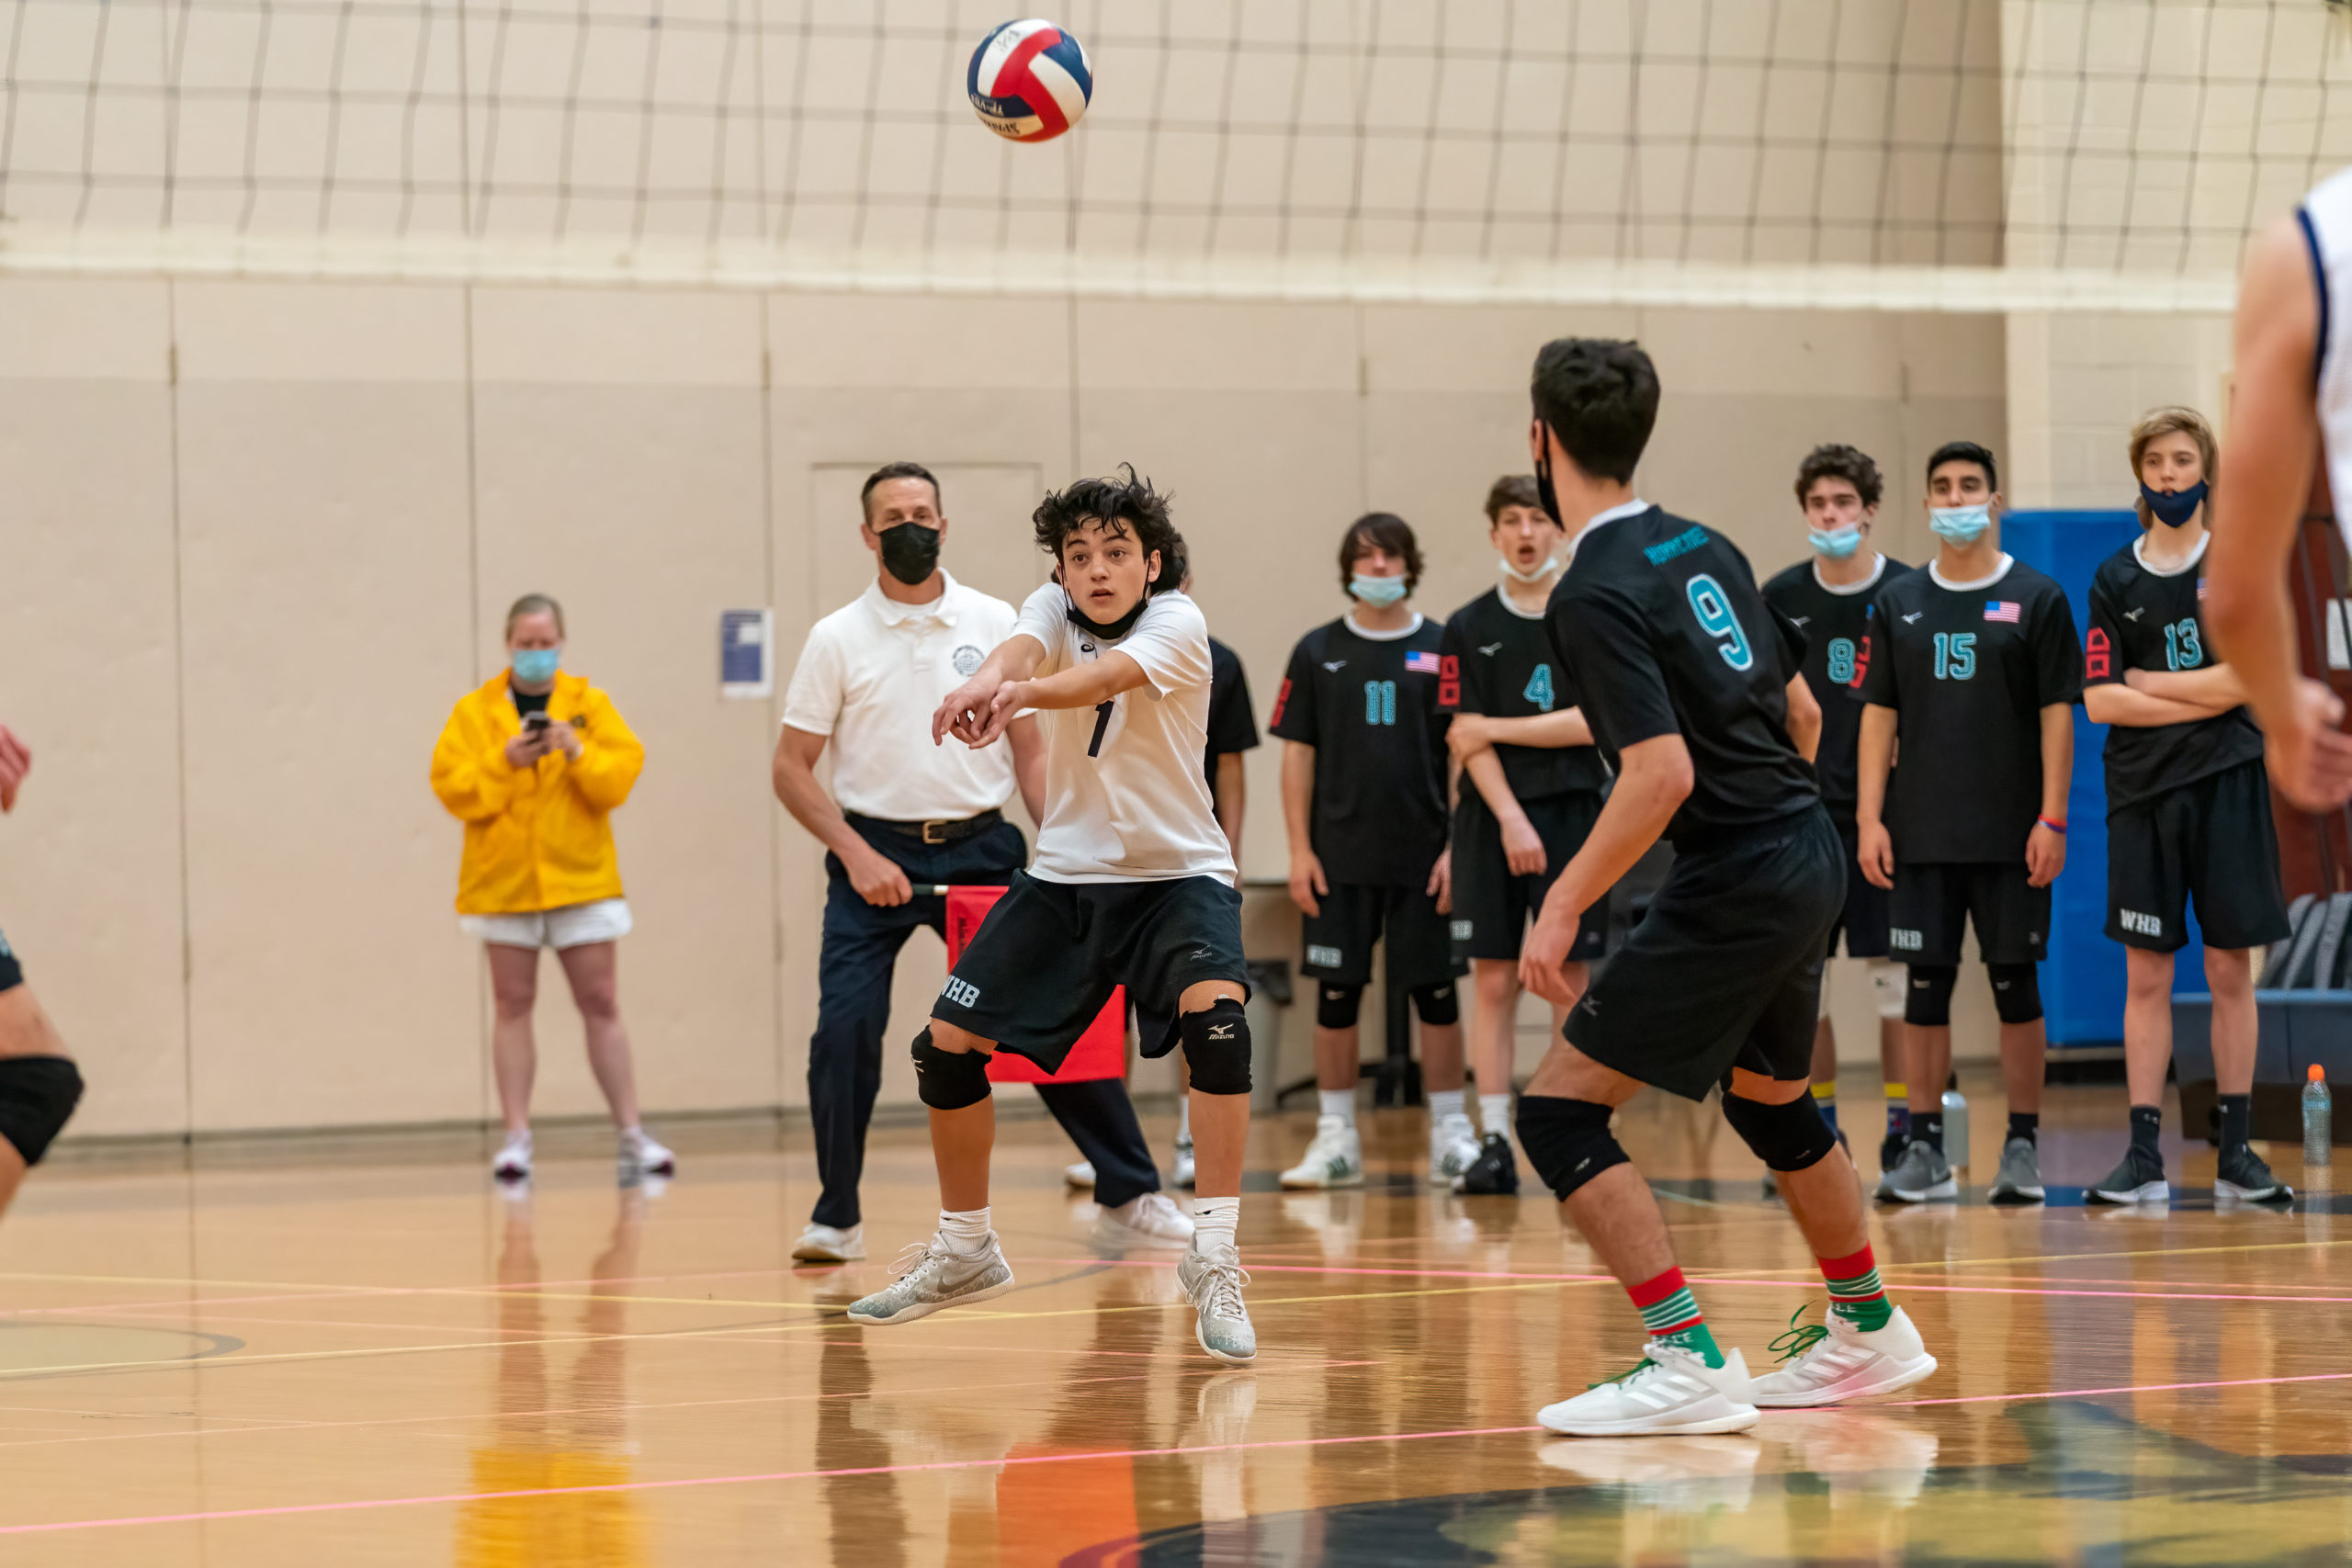 Westhampton Beach senior Carter Papagni records one of his 14 digs.